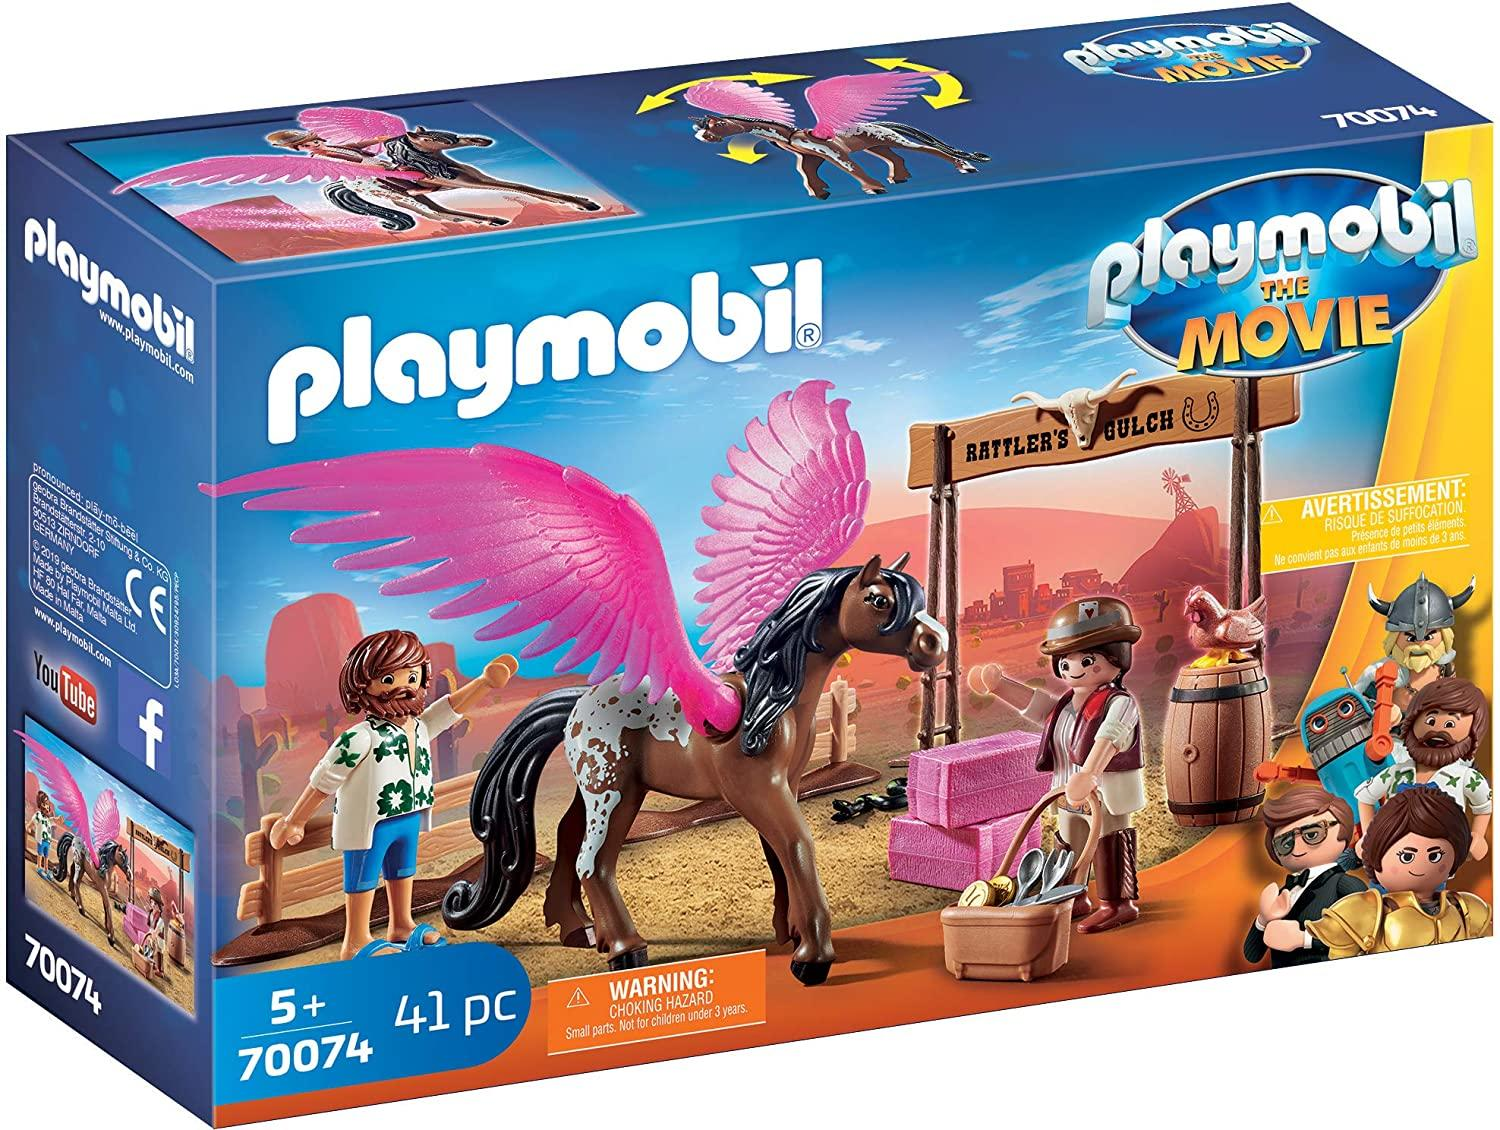 Playmobil 70074 The Movie Marla and Del with flying Horse Toymaster Ballina